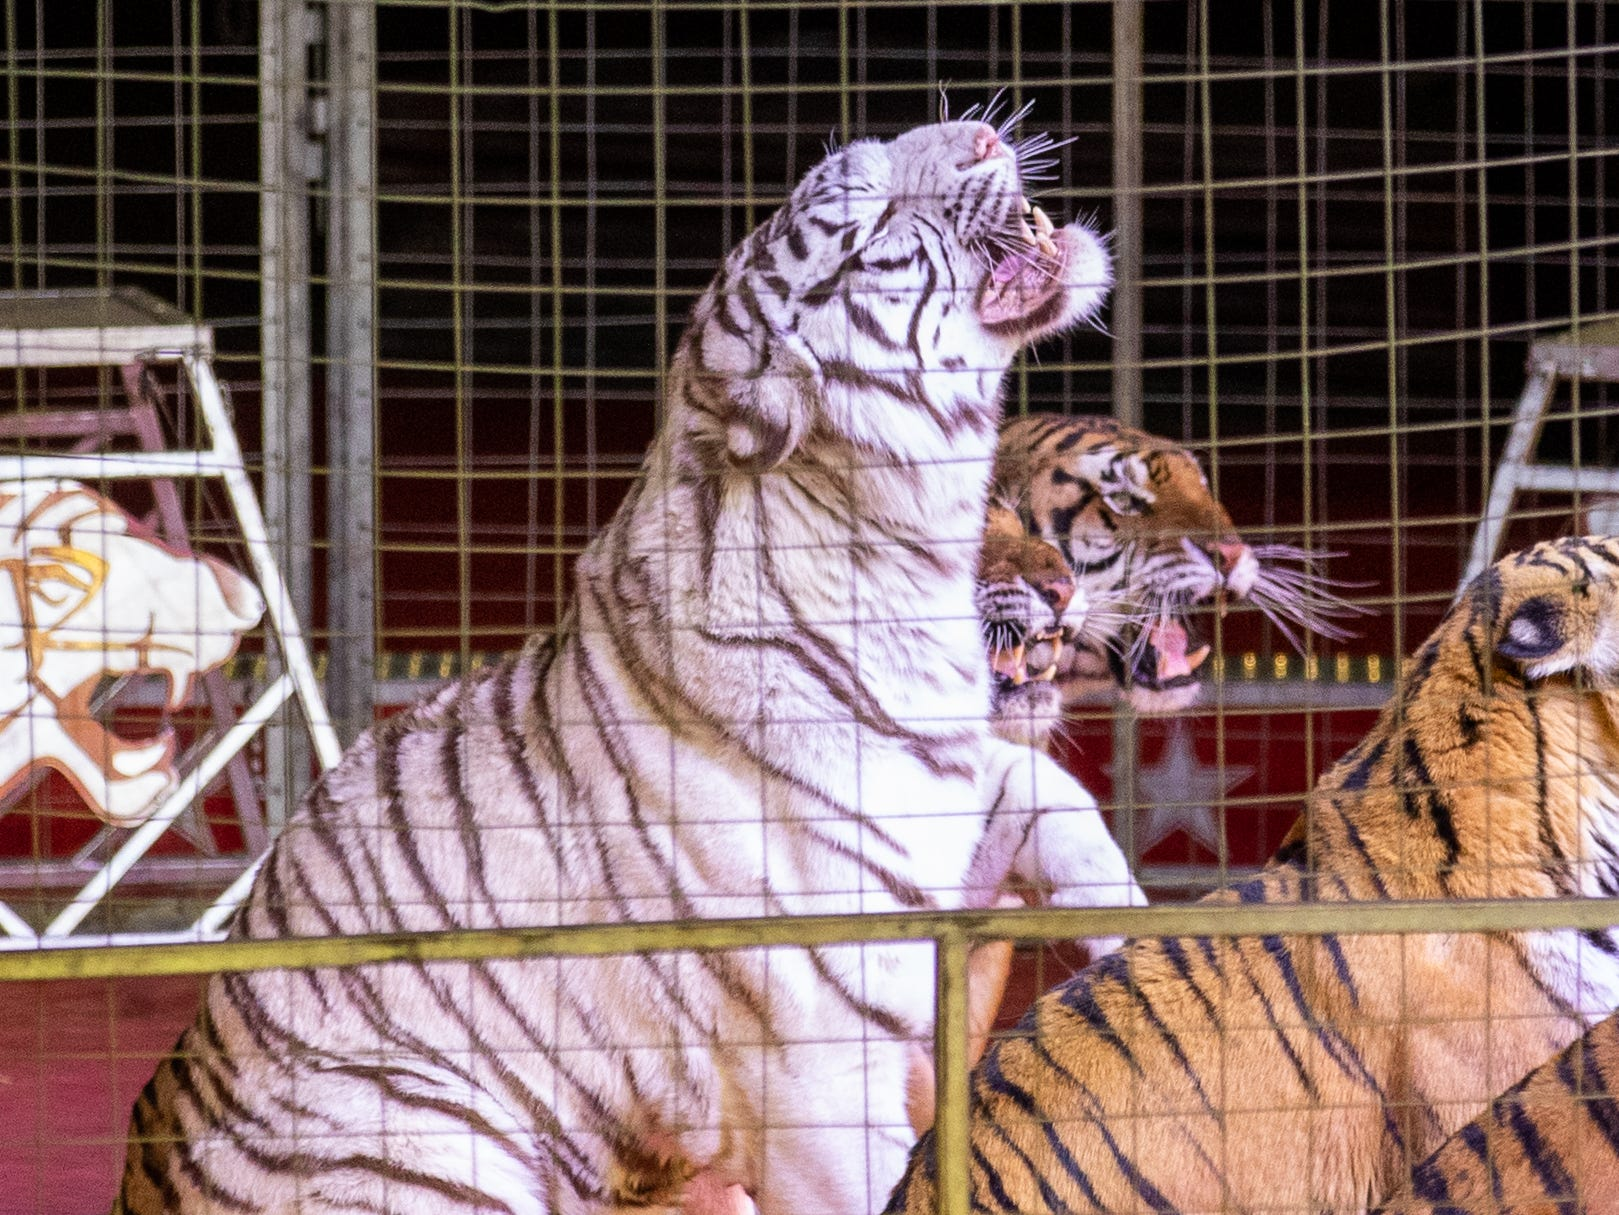 Standing up for the next trick, the rare white tiger opens his mouth showing off equally white teeth, Saturday, Feb. 9, 2019 in Louisville Ky. A mutation of the Bengal tiger so rare, its estimated only 1 in 10,000 tigers born in the wild is white.